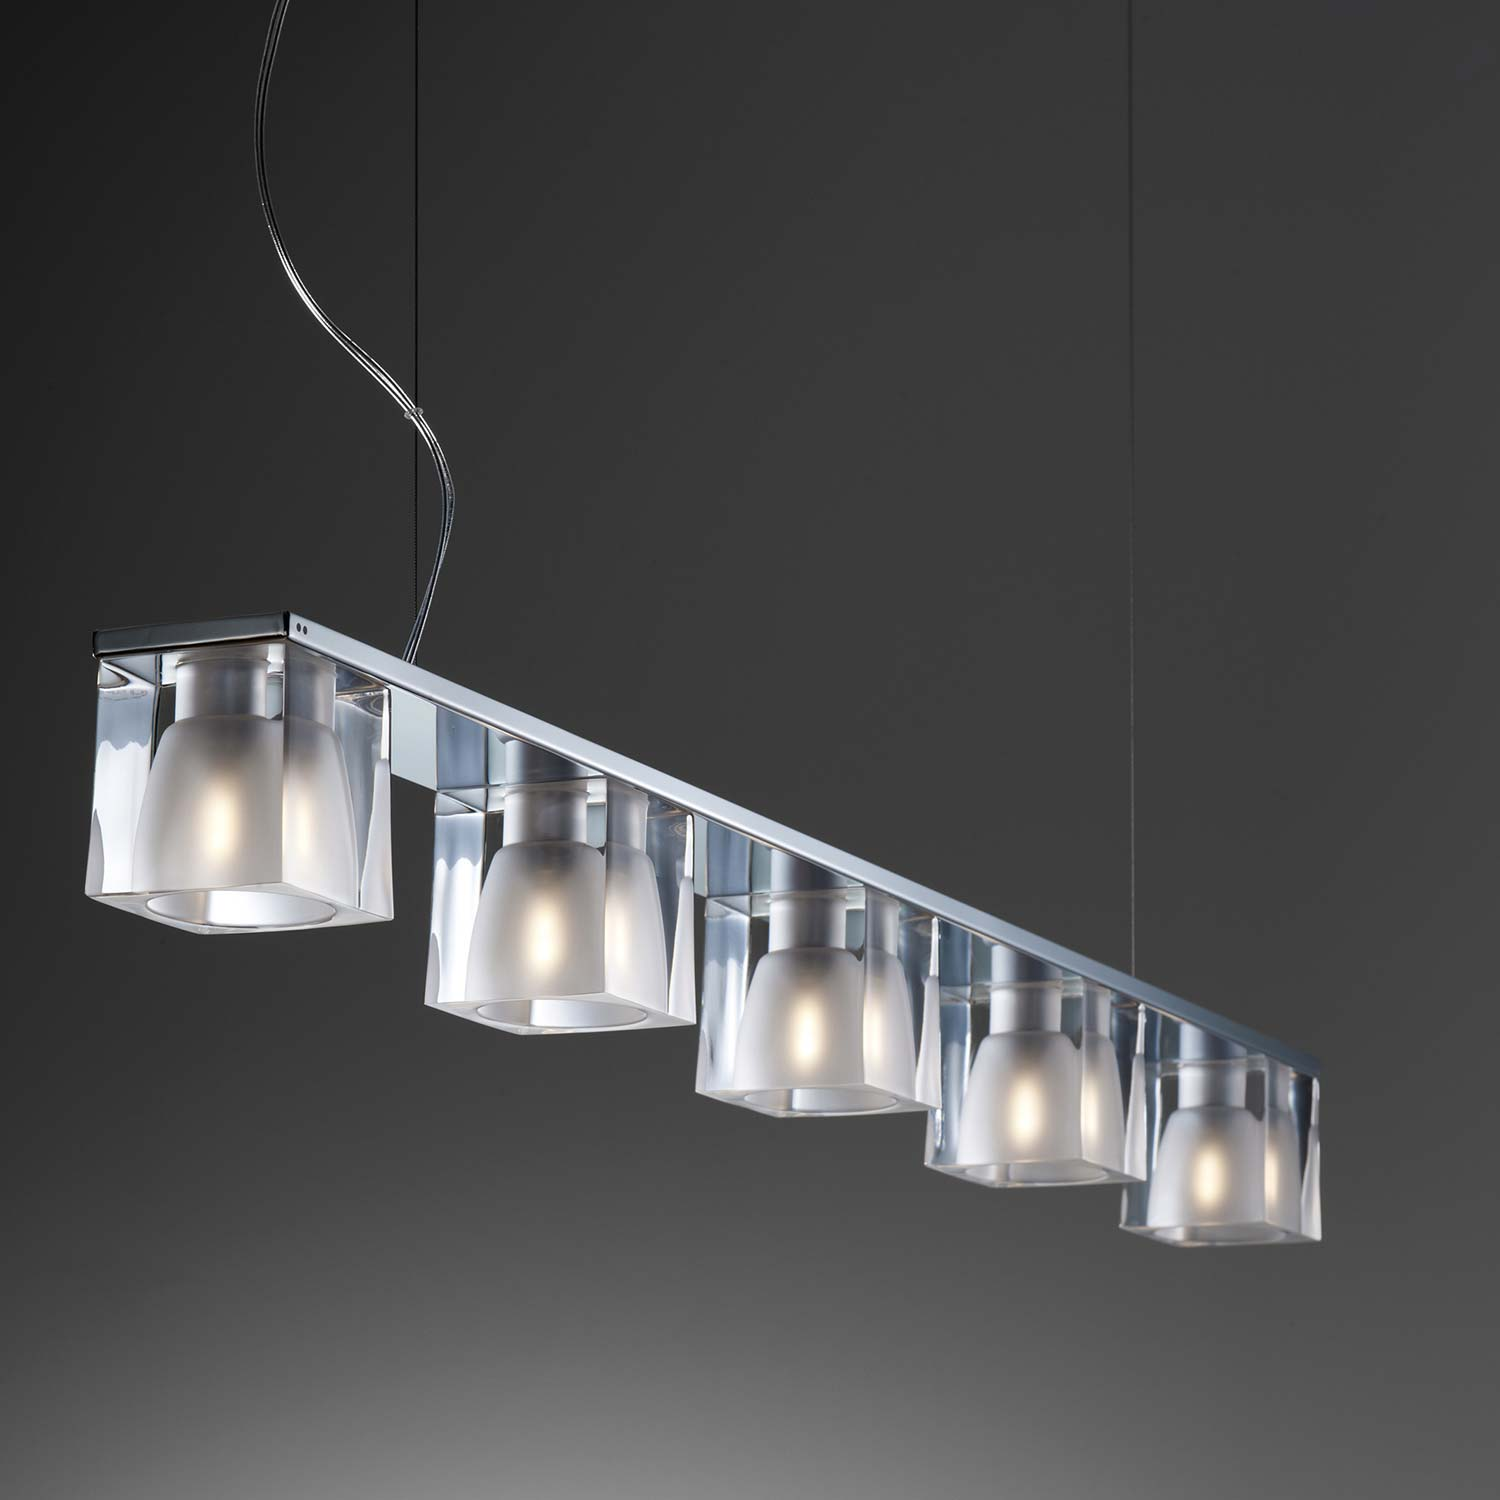 Ice Cube Pendant Light With Modern Italian Design Lampefeber